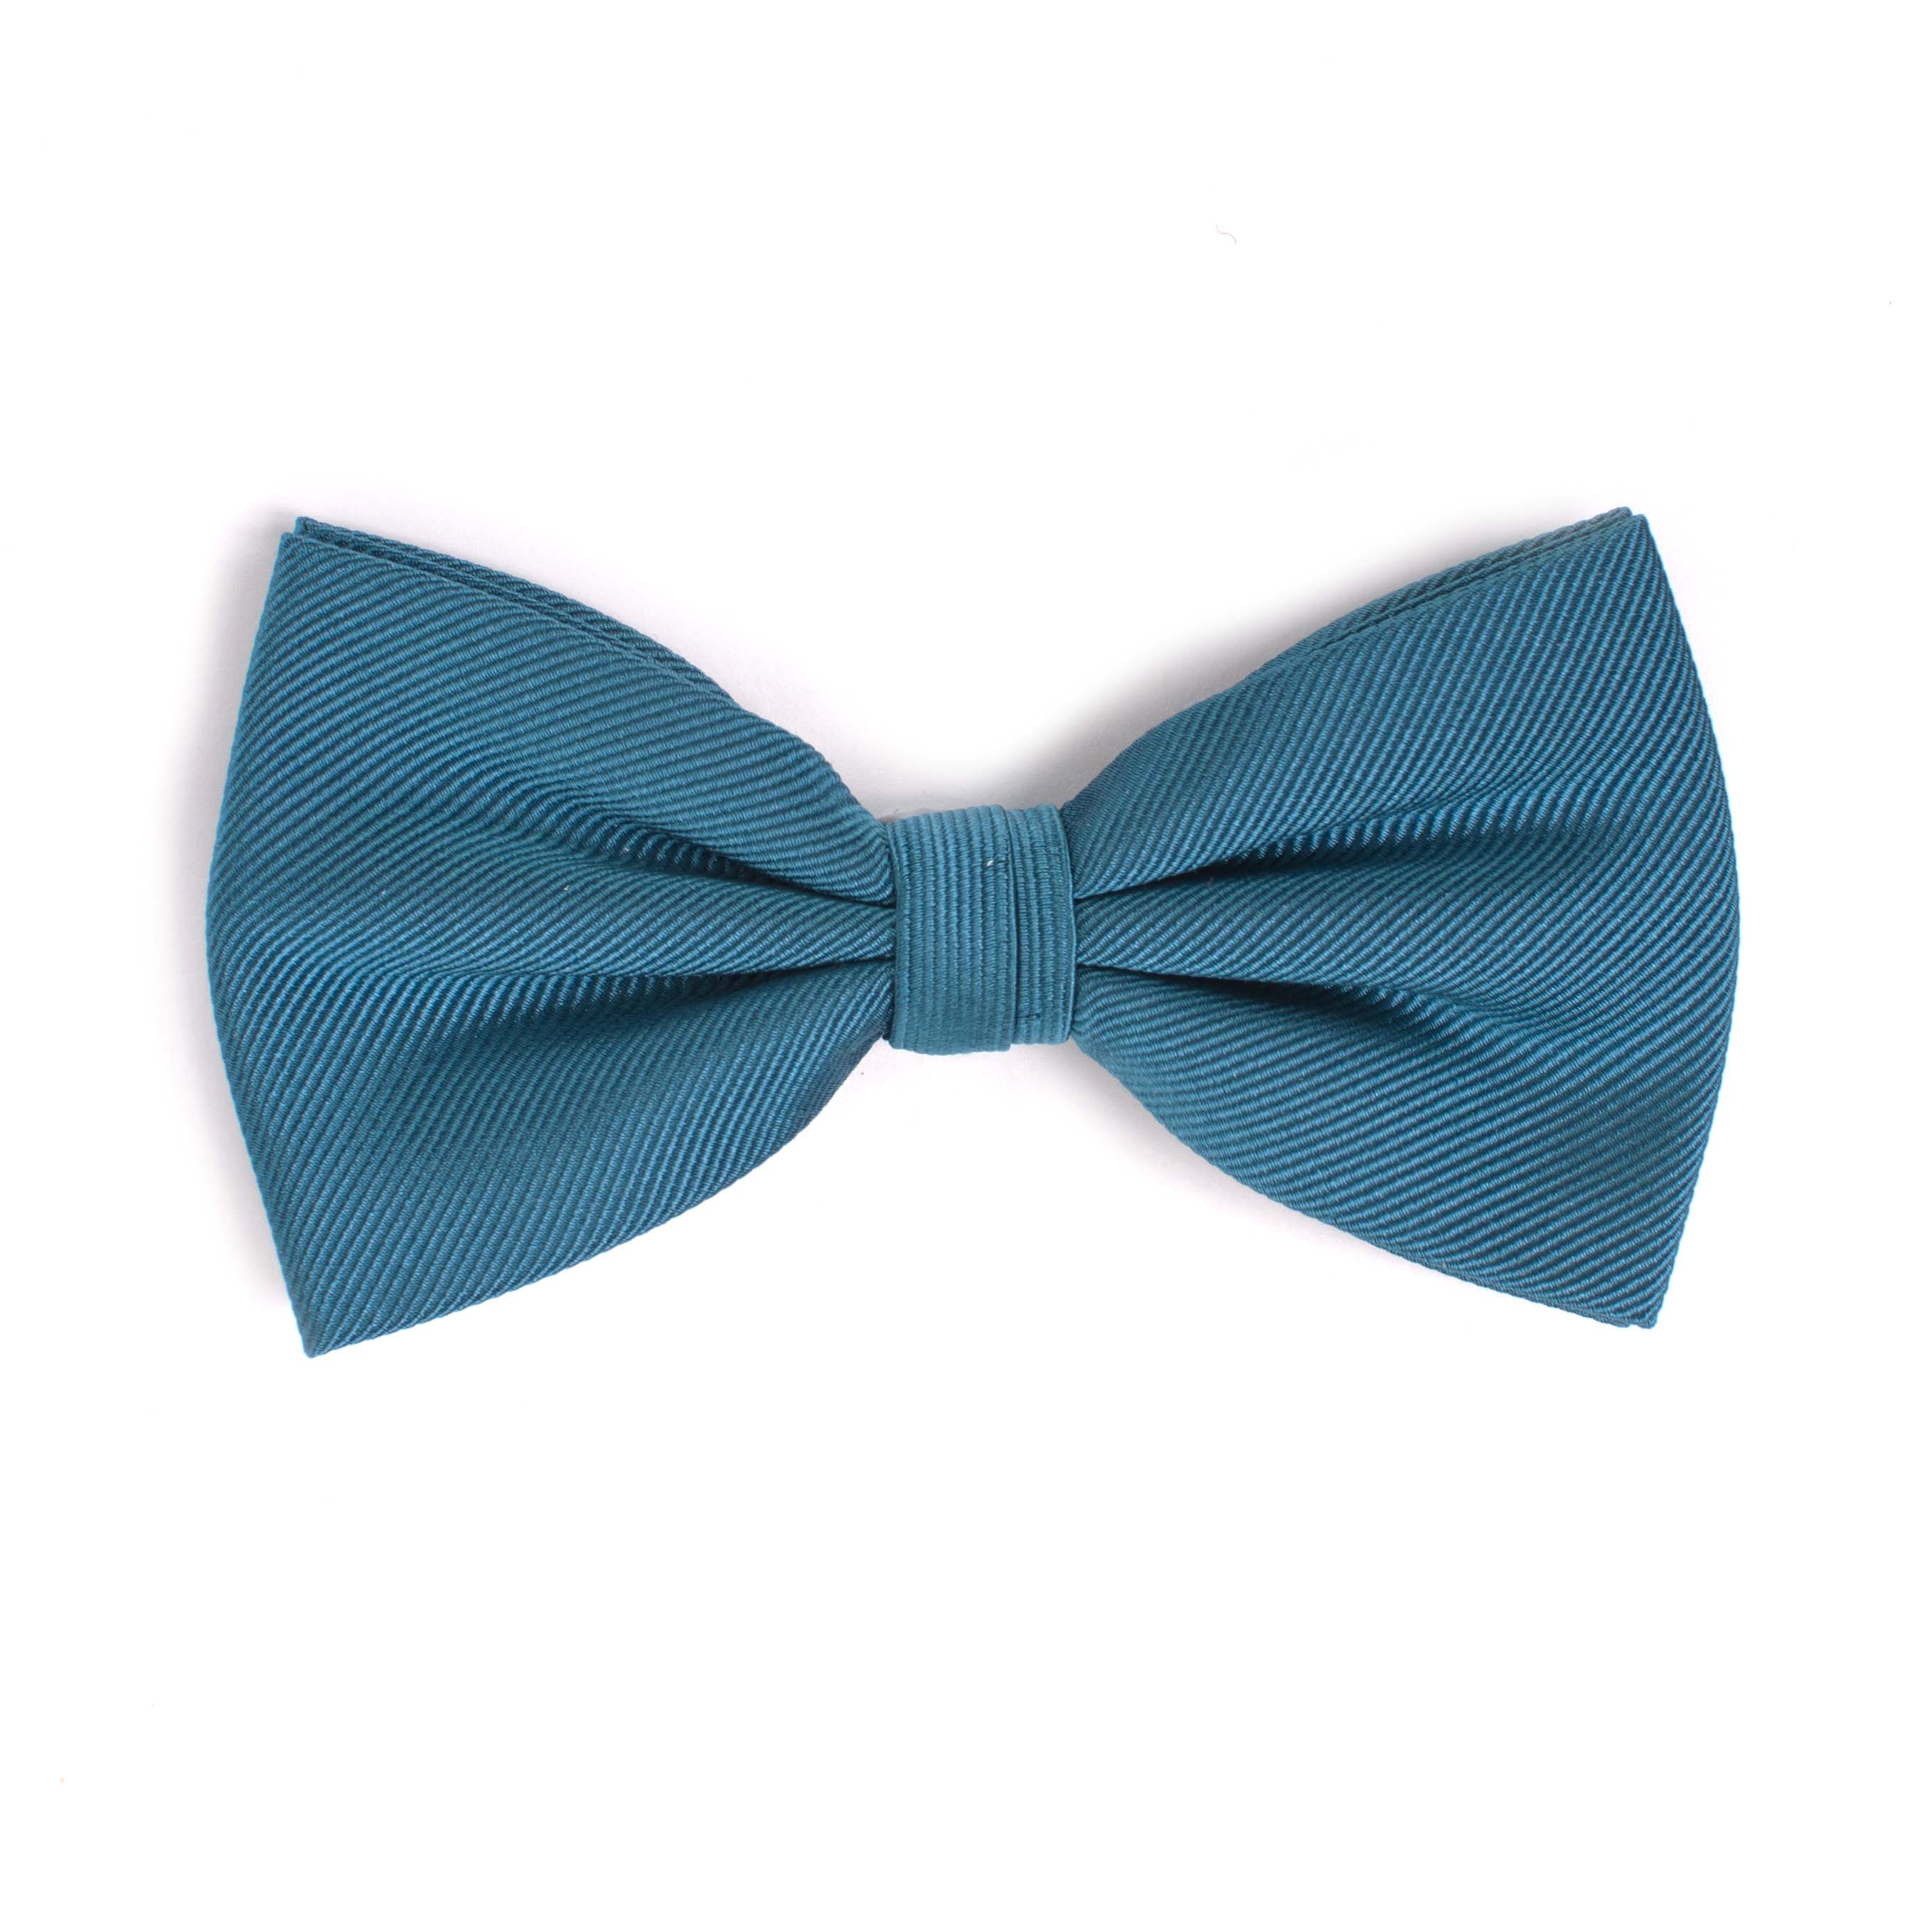 Bow tie classic ribbed petrol